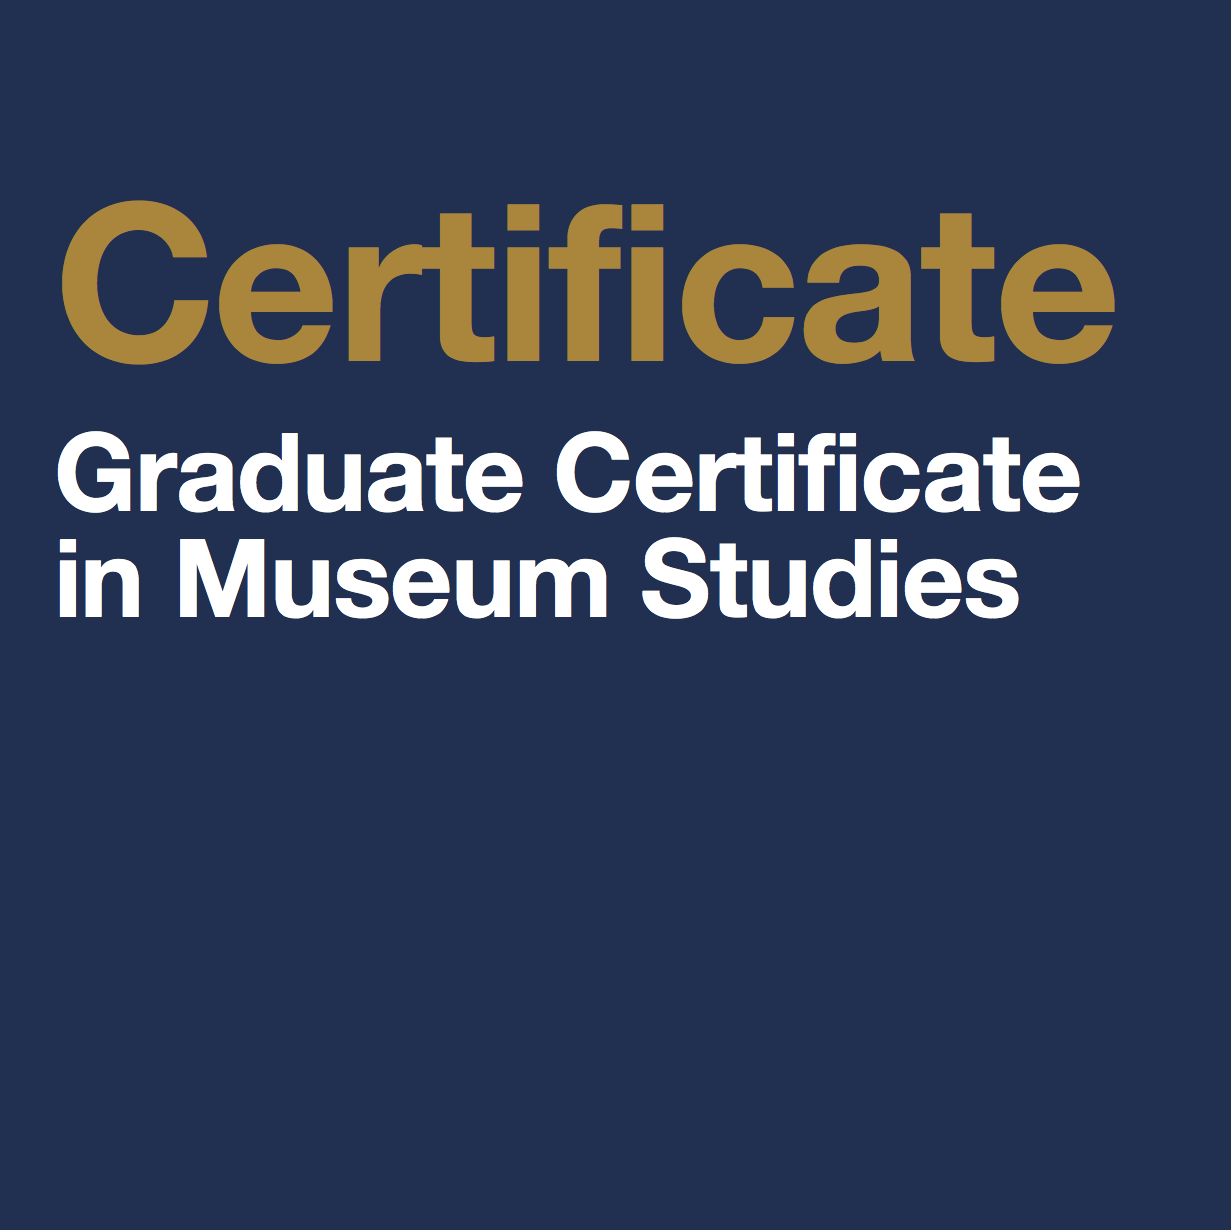 Museum Studies - Non-Degree Program